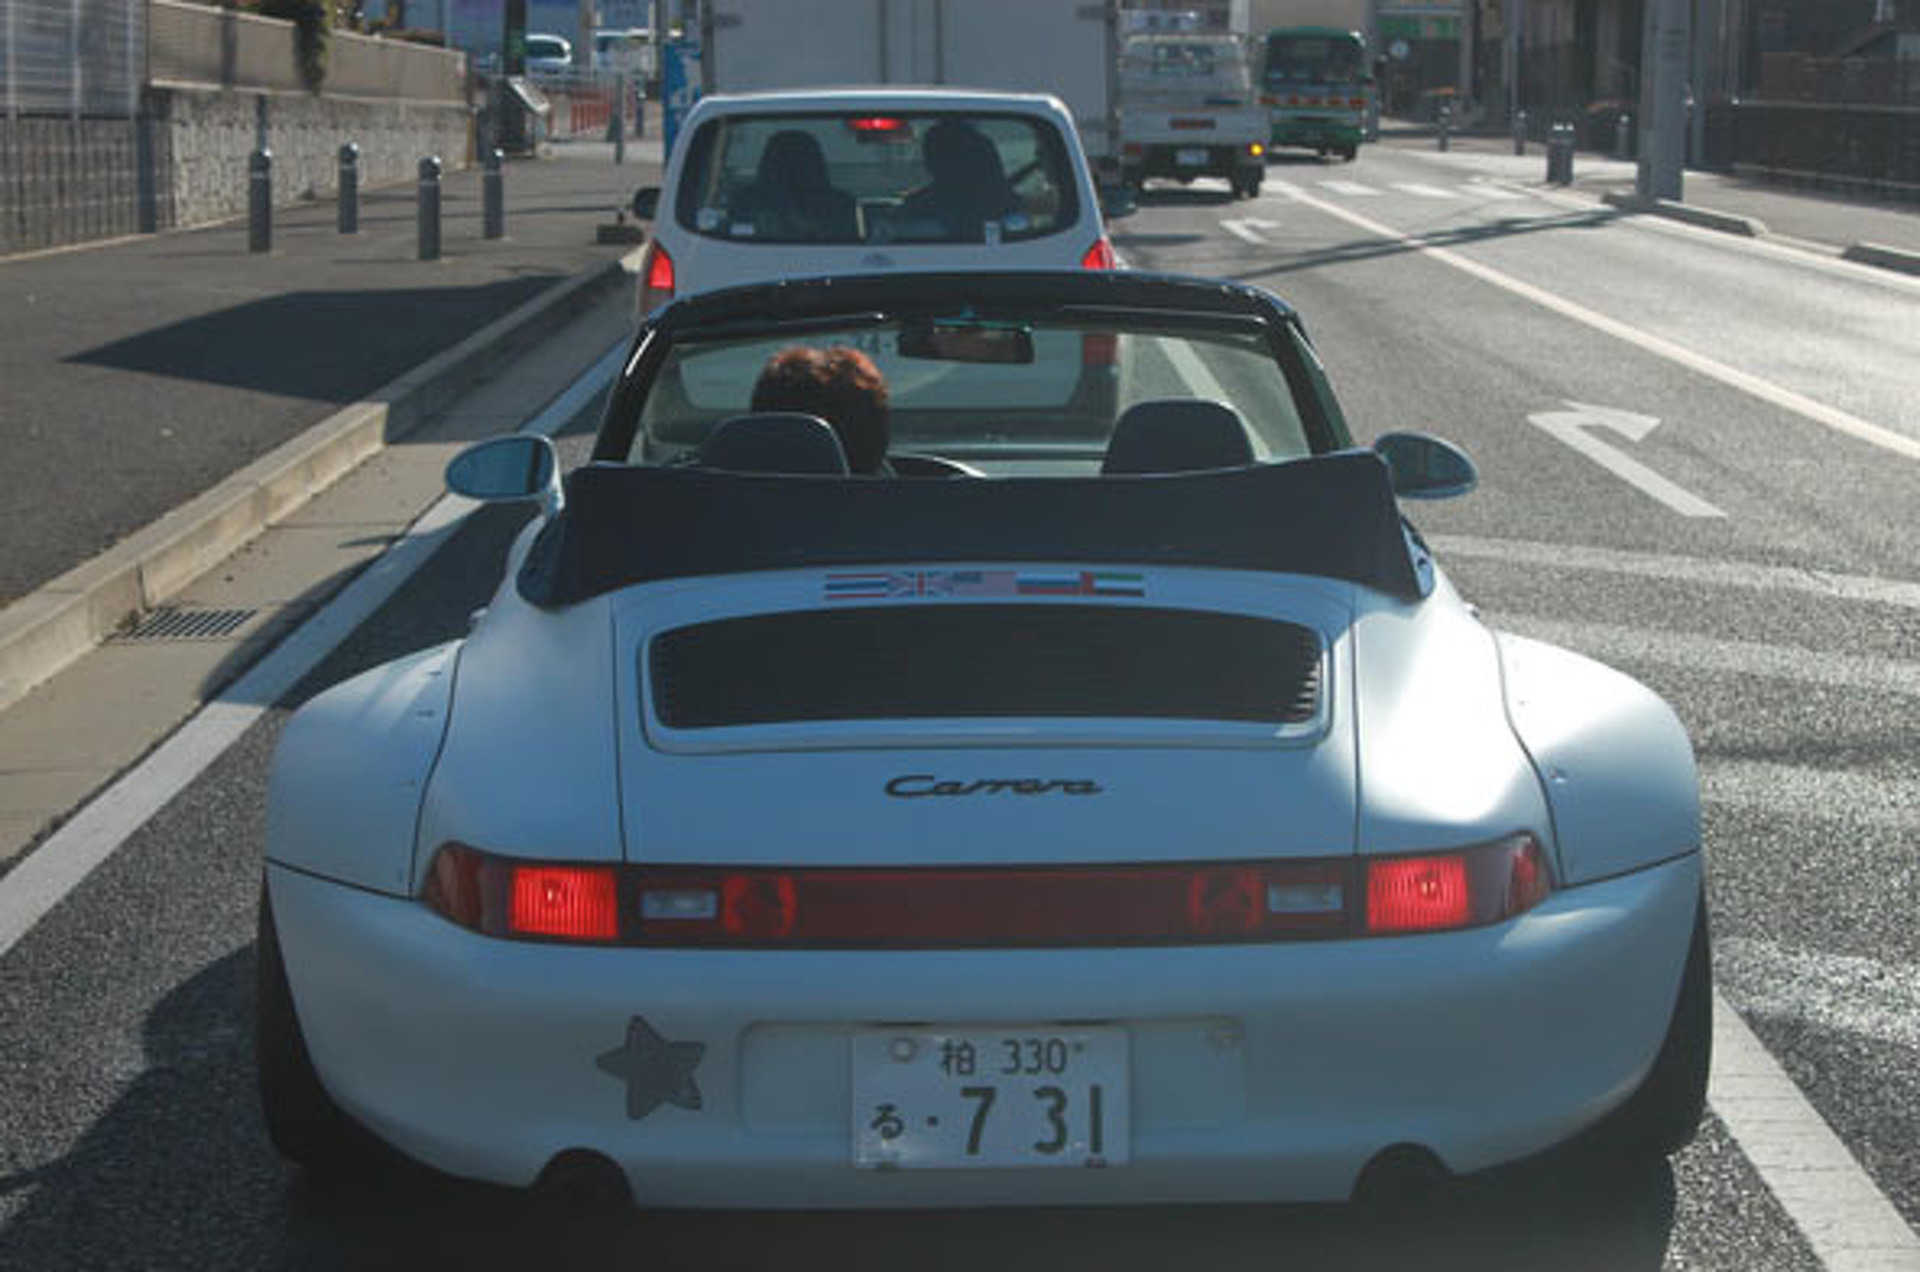 Lunatic or Genius? Akira Nakai & the Cars of RAUH-Welt Begriff